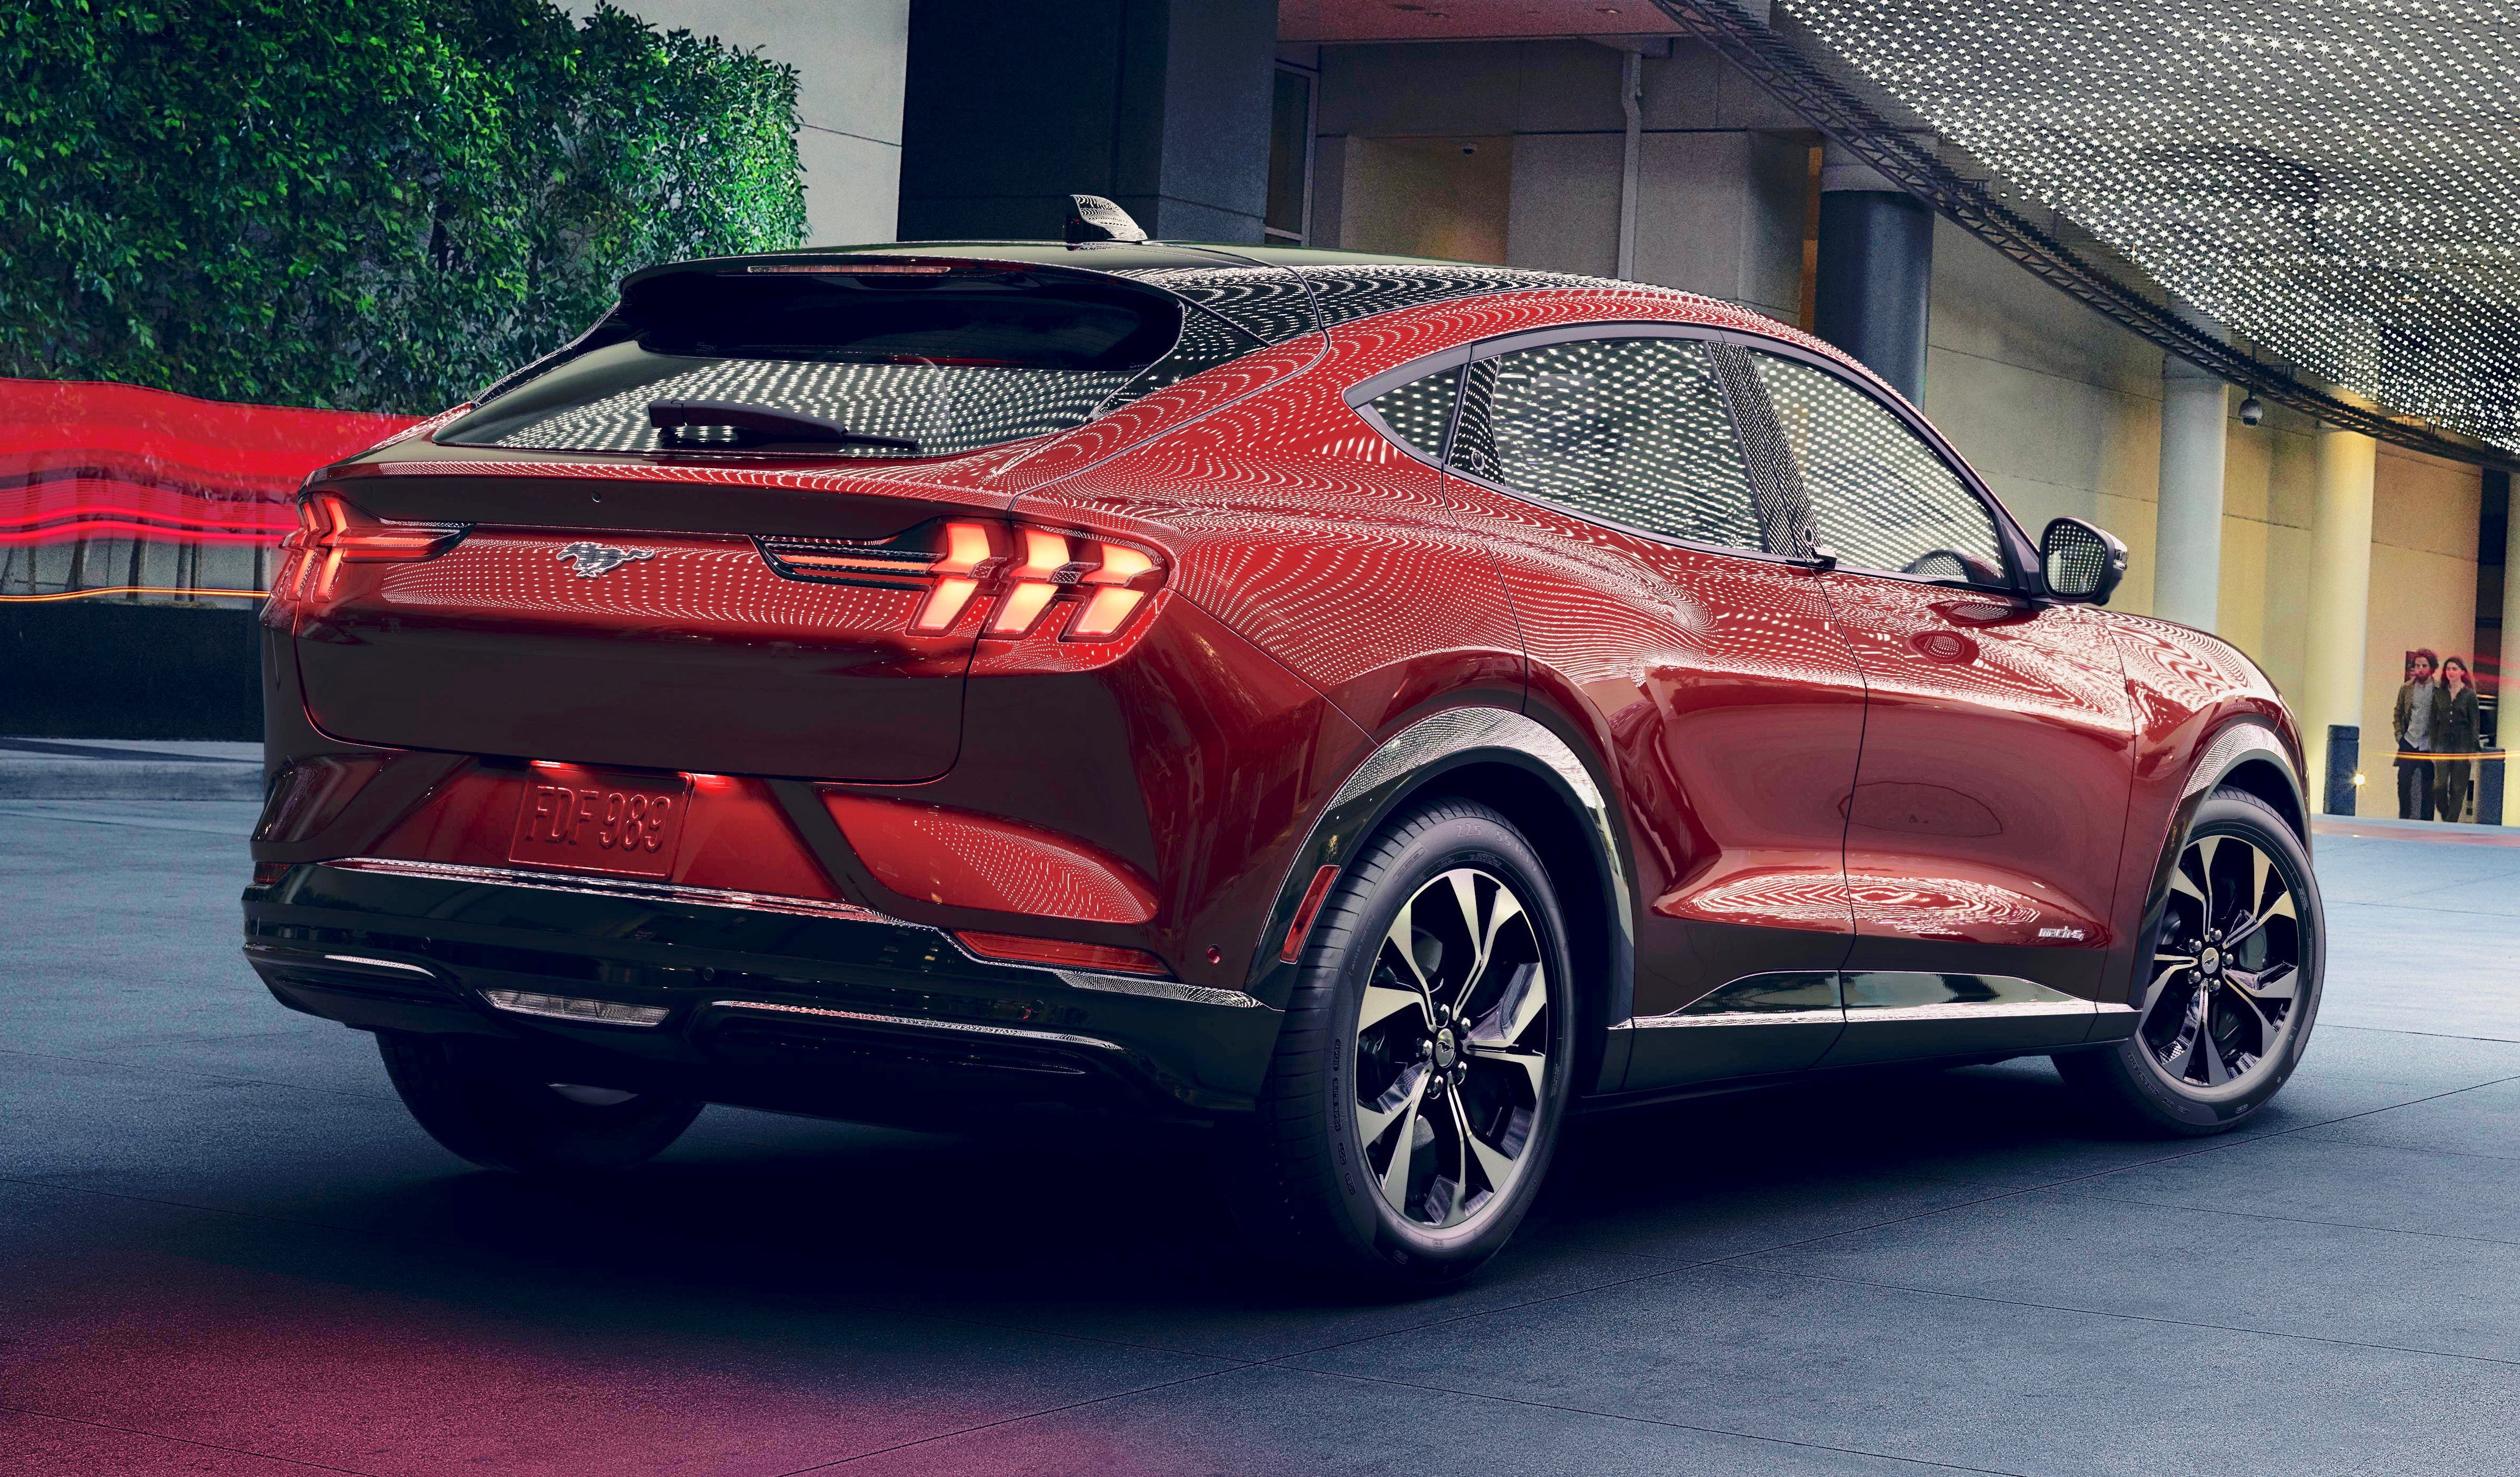 2020 Ford Mustang Mach E Electric Car